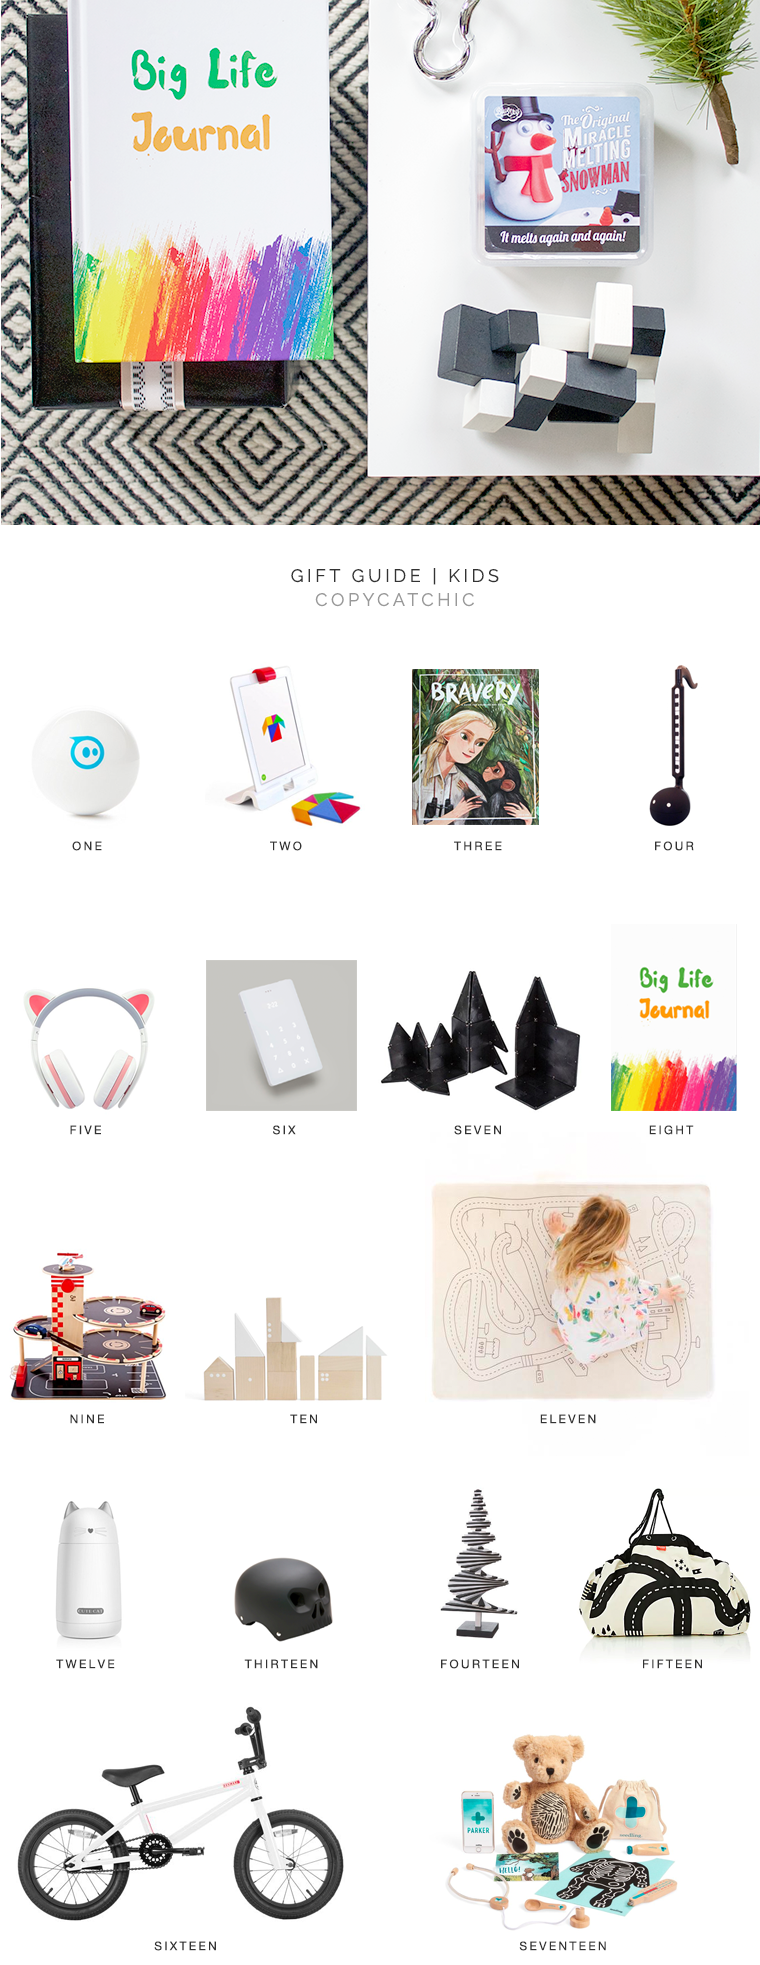 Modern minimalist stylish chic gift ideas for kids. Holiday Gift guide Copy Cat Chic hipster favorites for the kids in your life | Luxe living for less